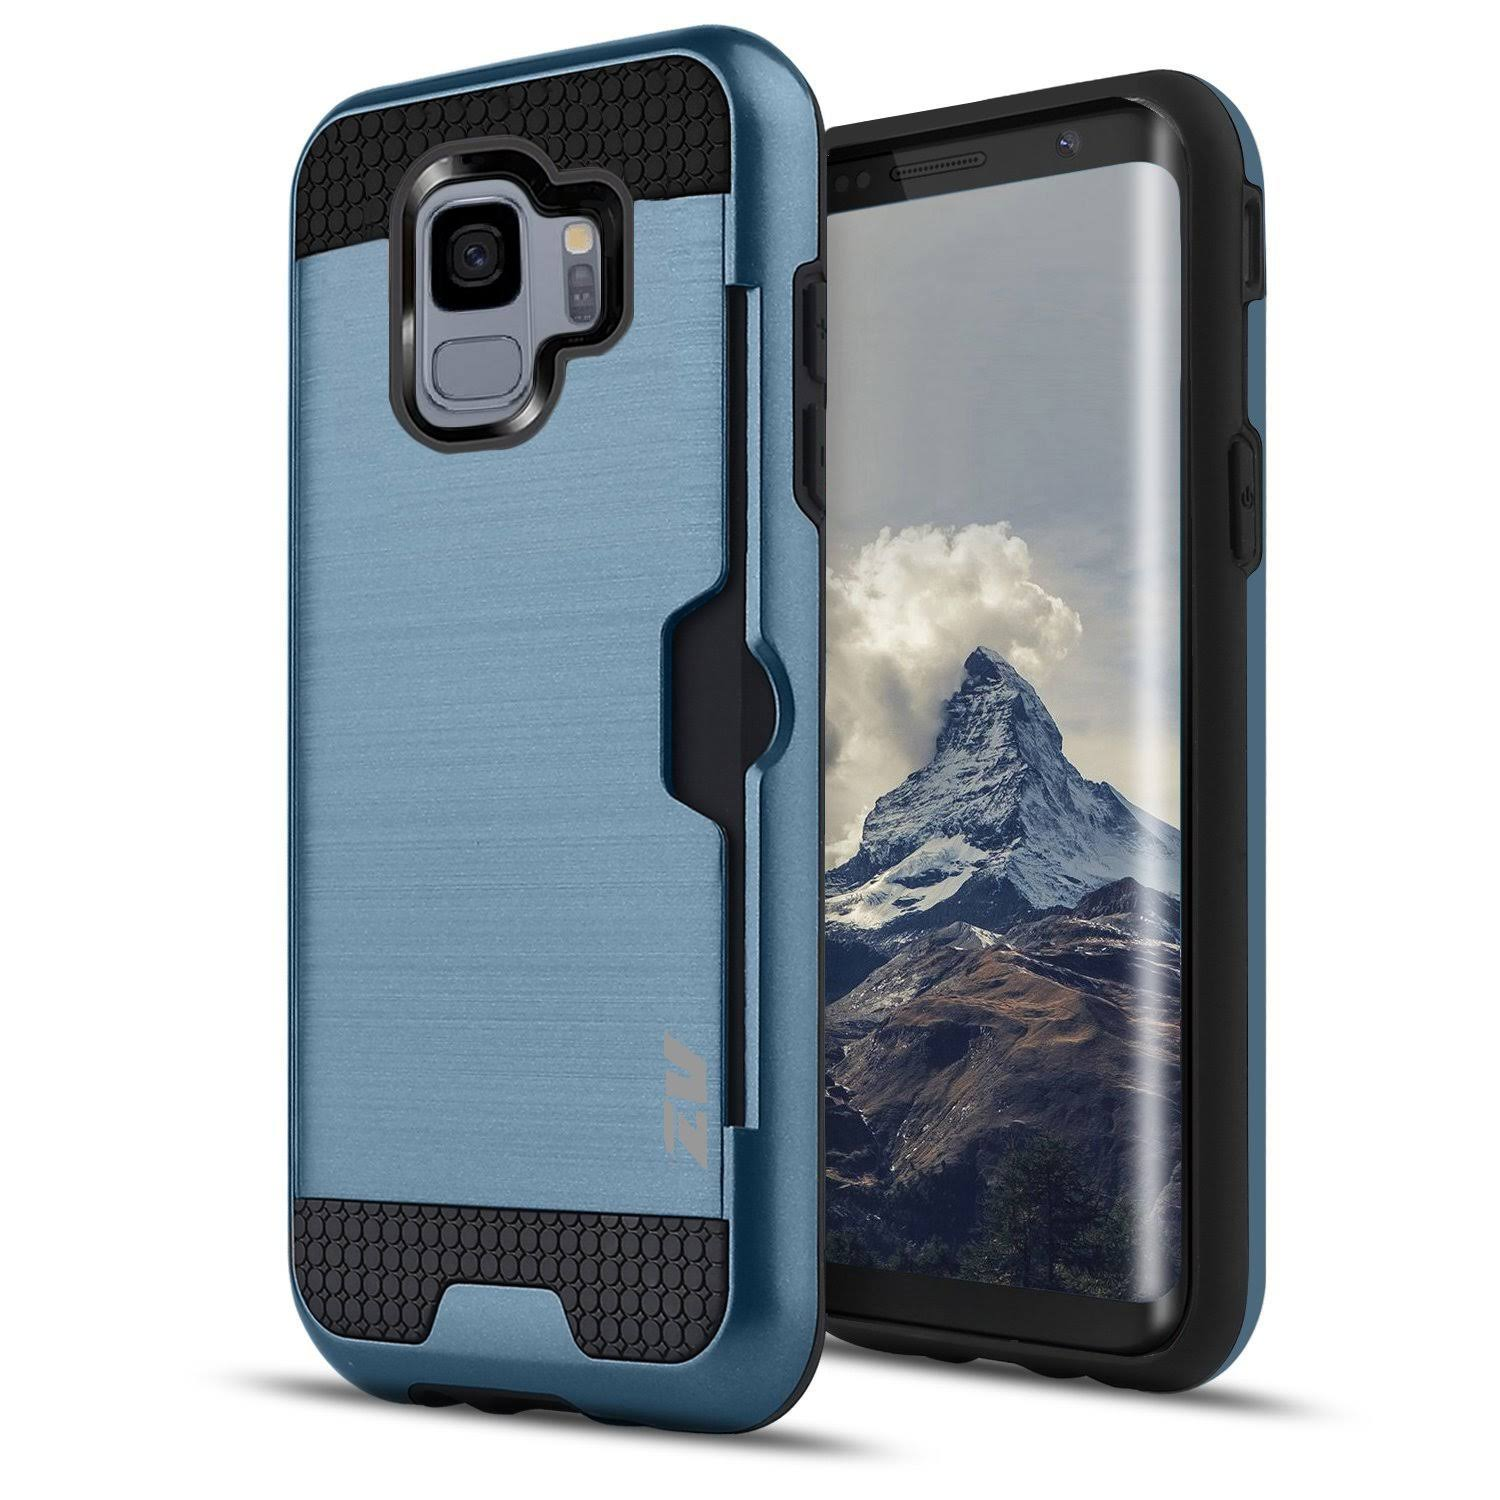 Samsung Galaxy S9 - Metallic Hybrid Cover with Credit Card Slots, Blue/Blue